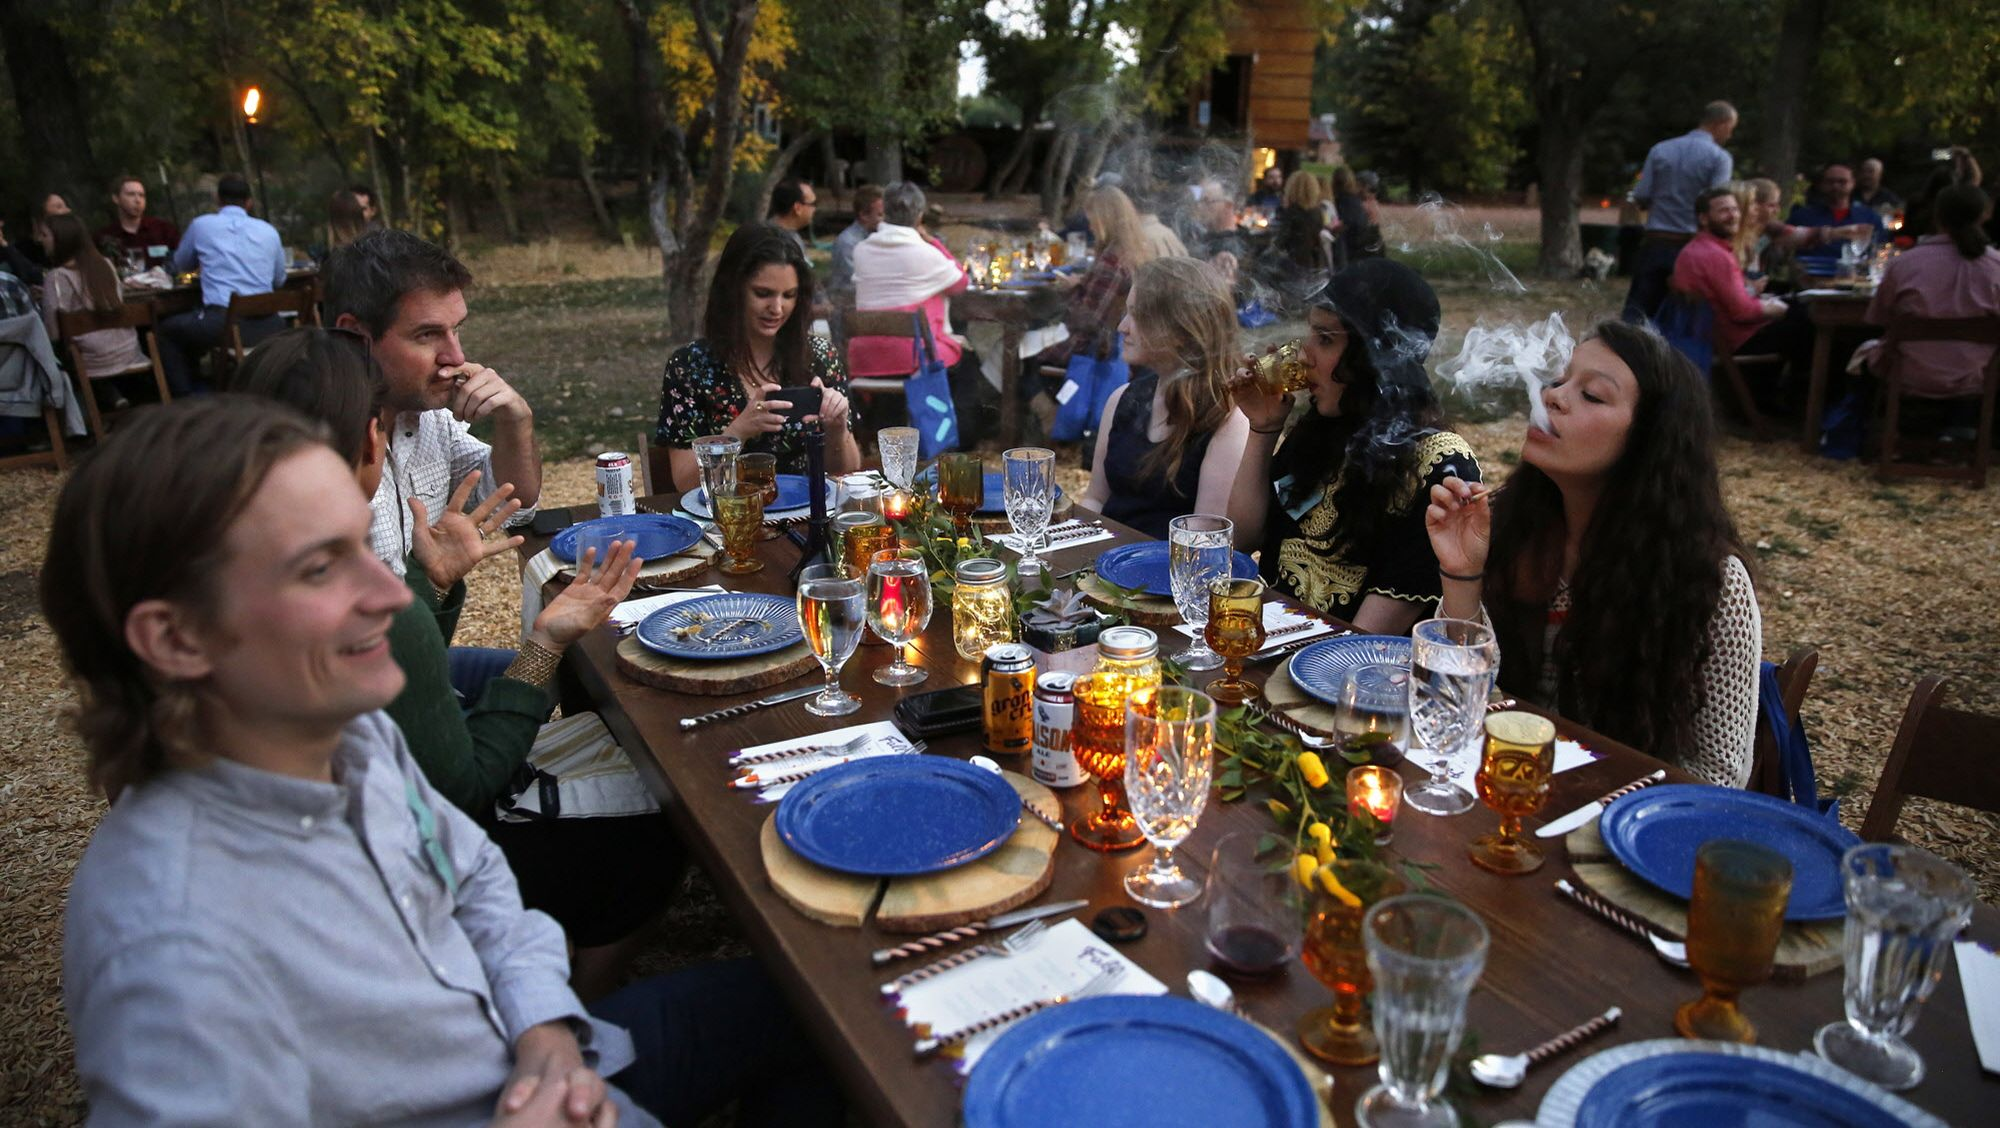 Guests dining at Planet Bluegrass, an outdoor venue in Lyons, Colo. (AP Photo/Brennan Linsley, File)